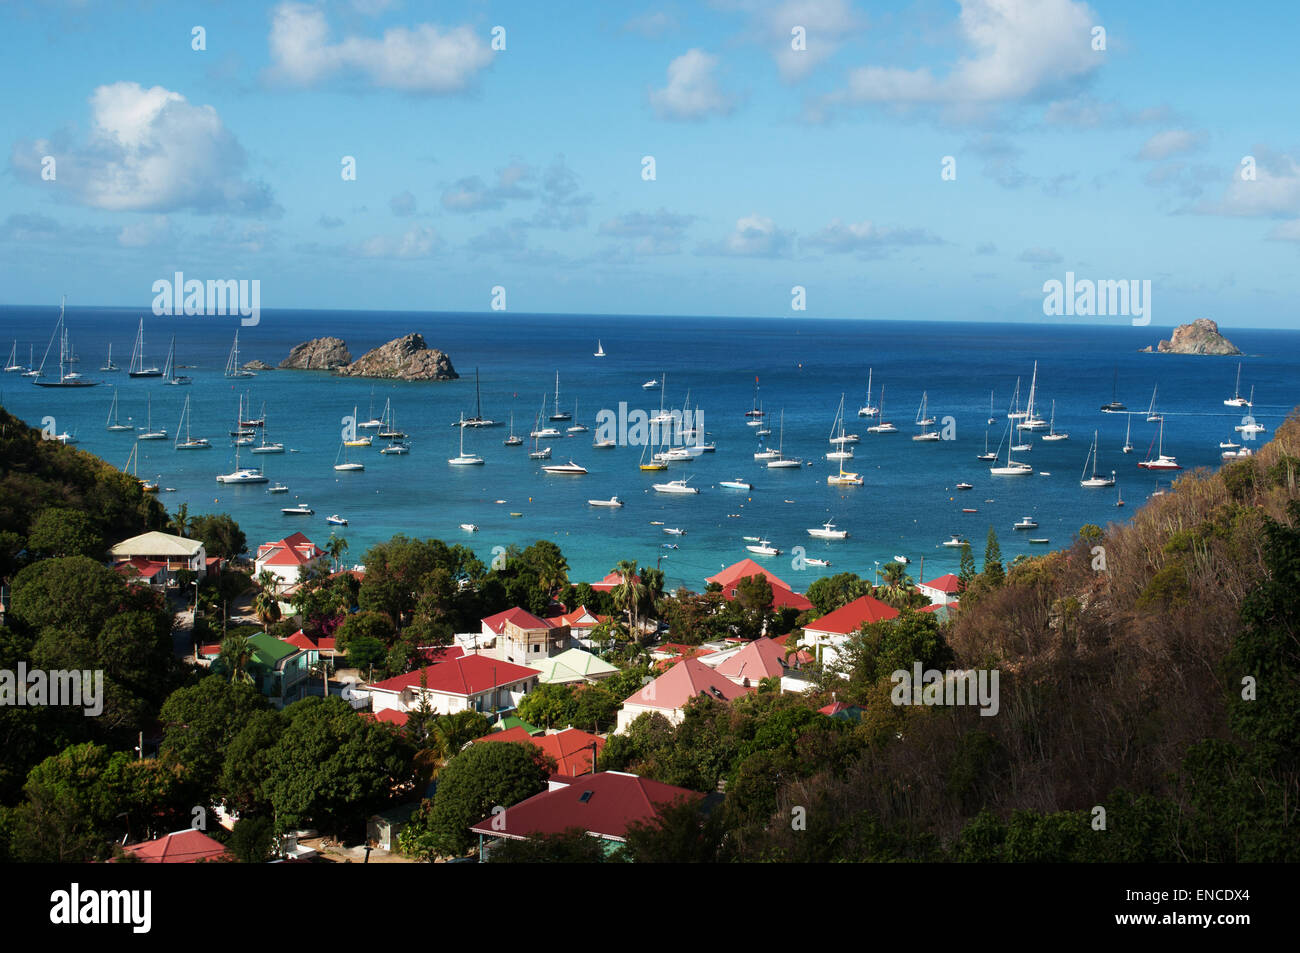 St Barth, St. Barths, Saint-Barthélemy: the Caribbean Sea with the sailboats in the port of Gustavia seen from the Stock Photo